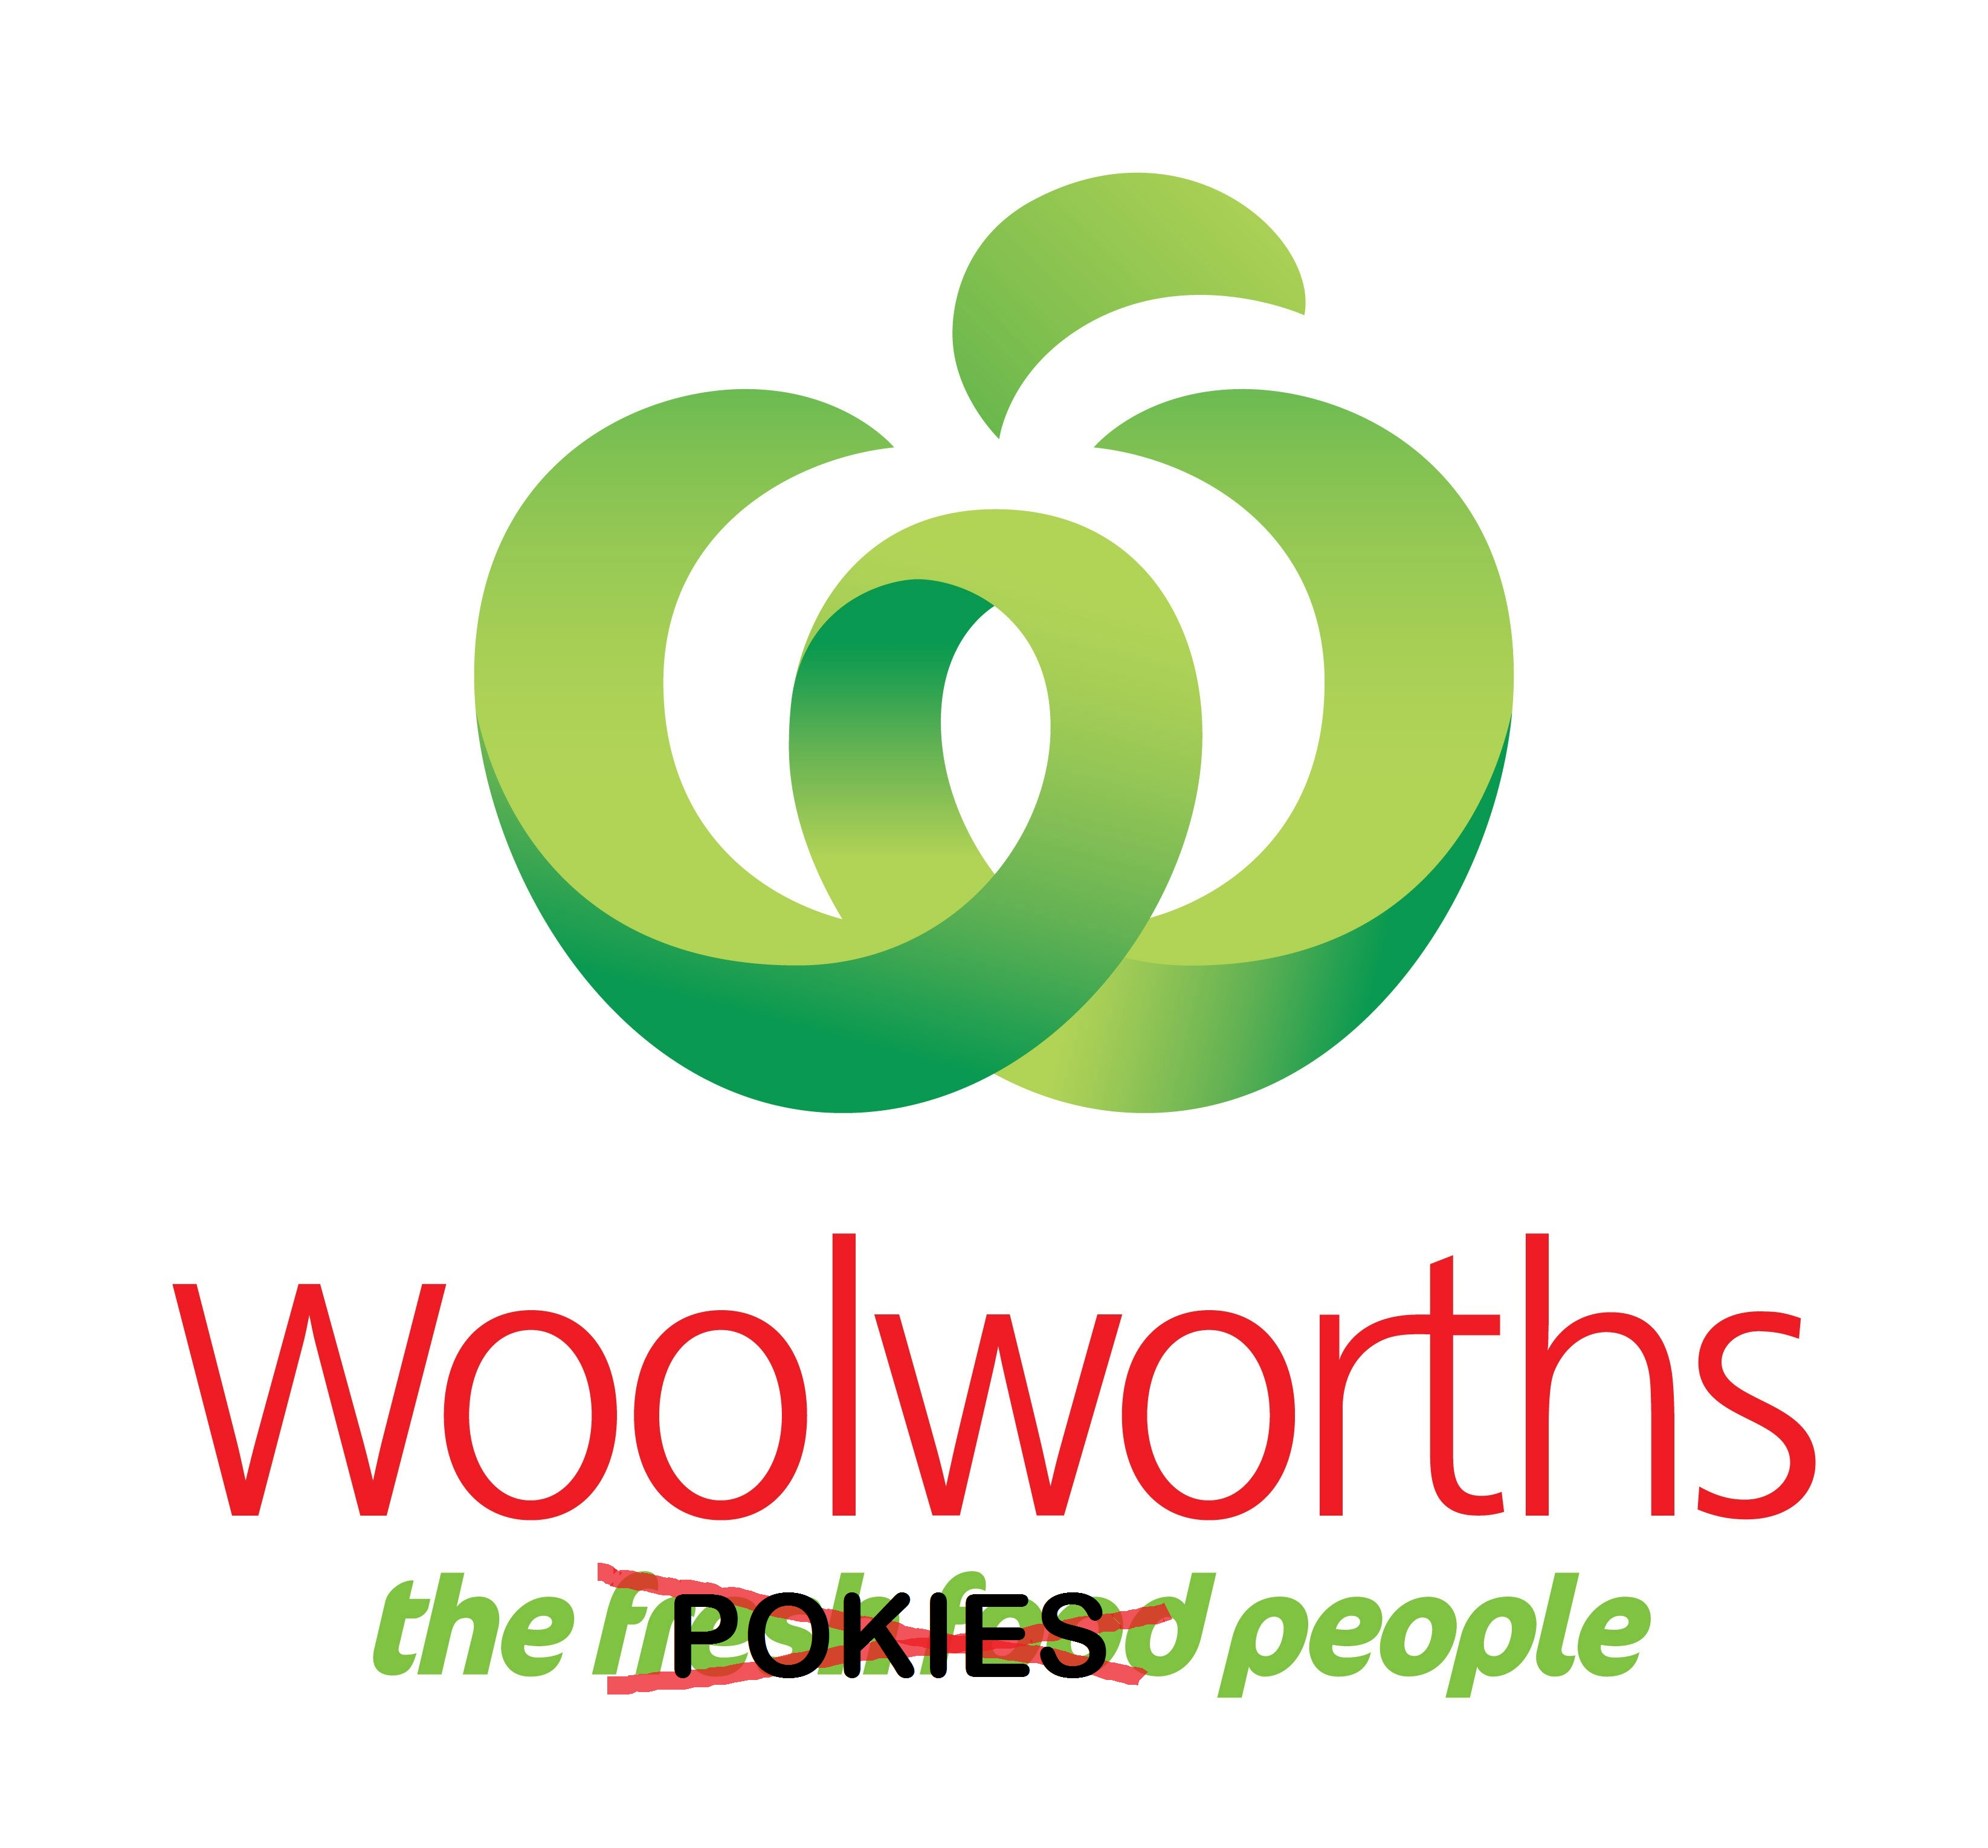 Woolworths logo changed to read The Pokies People